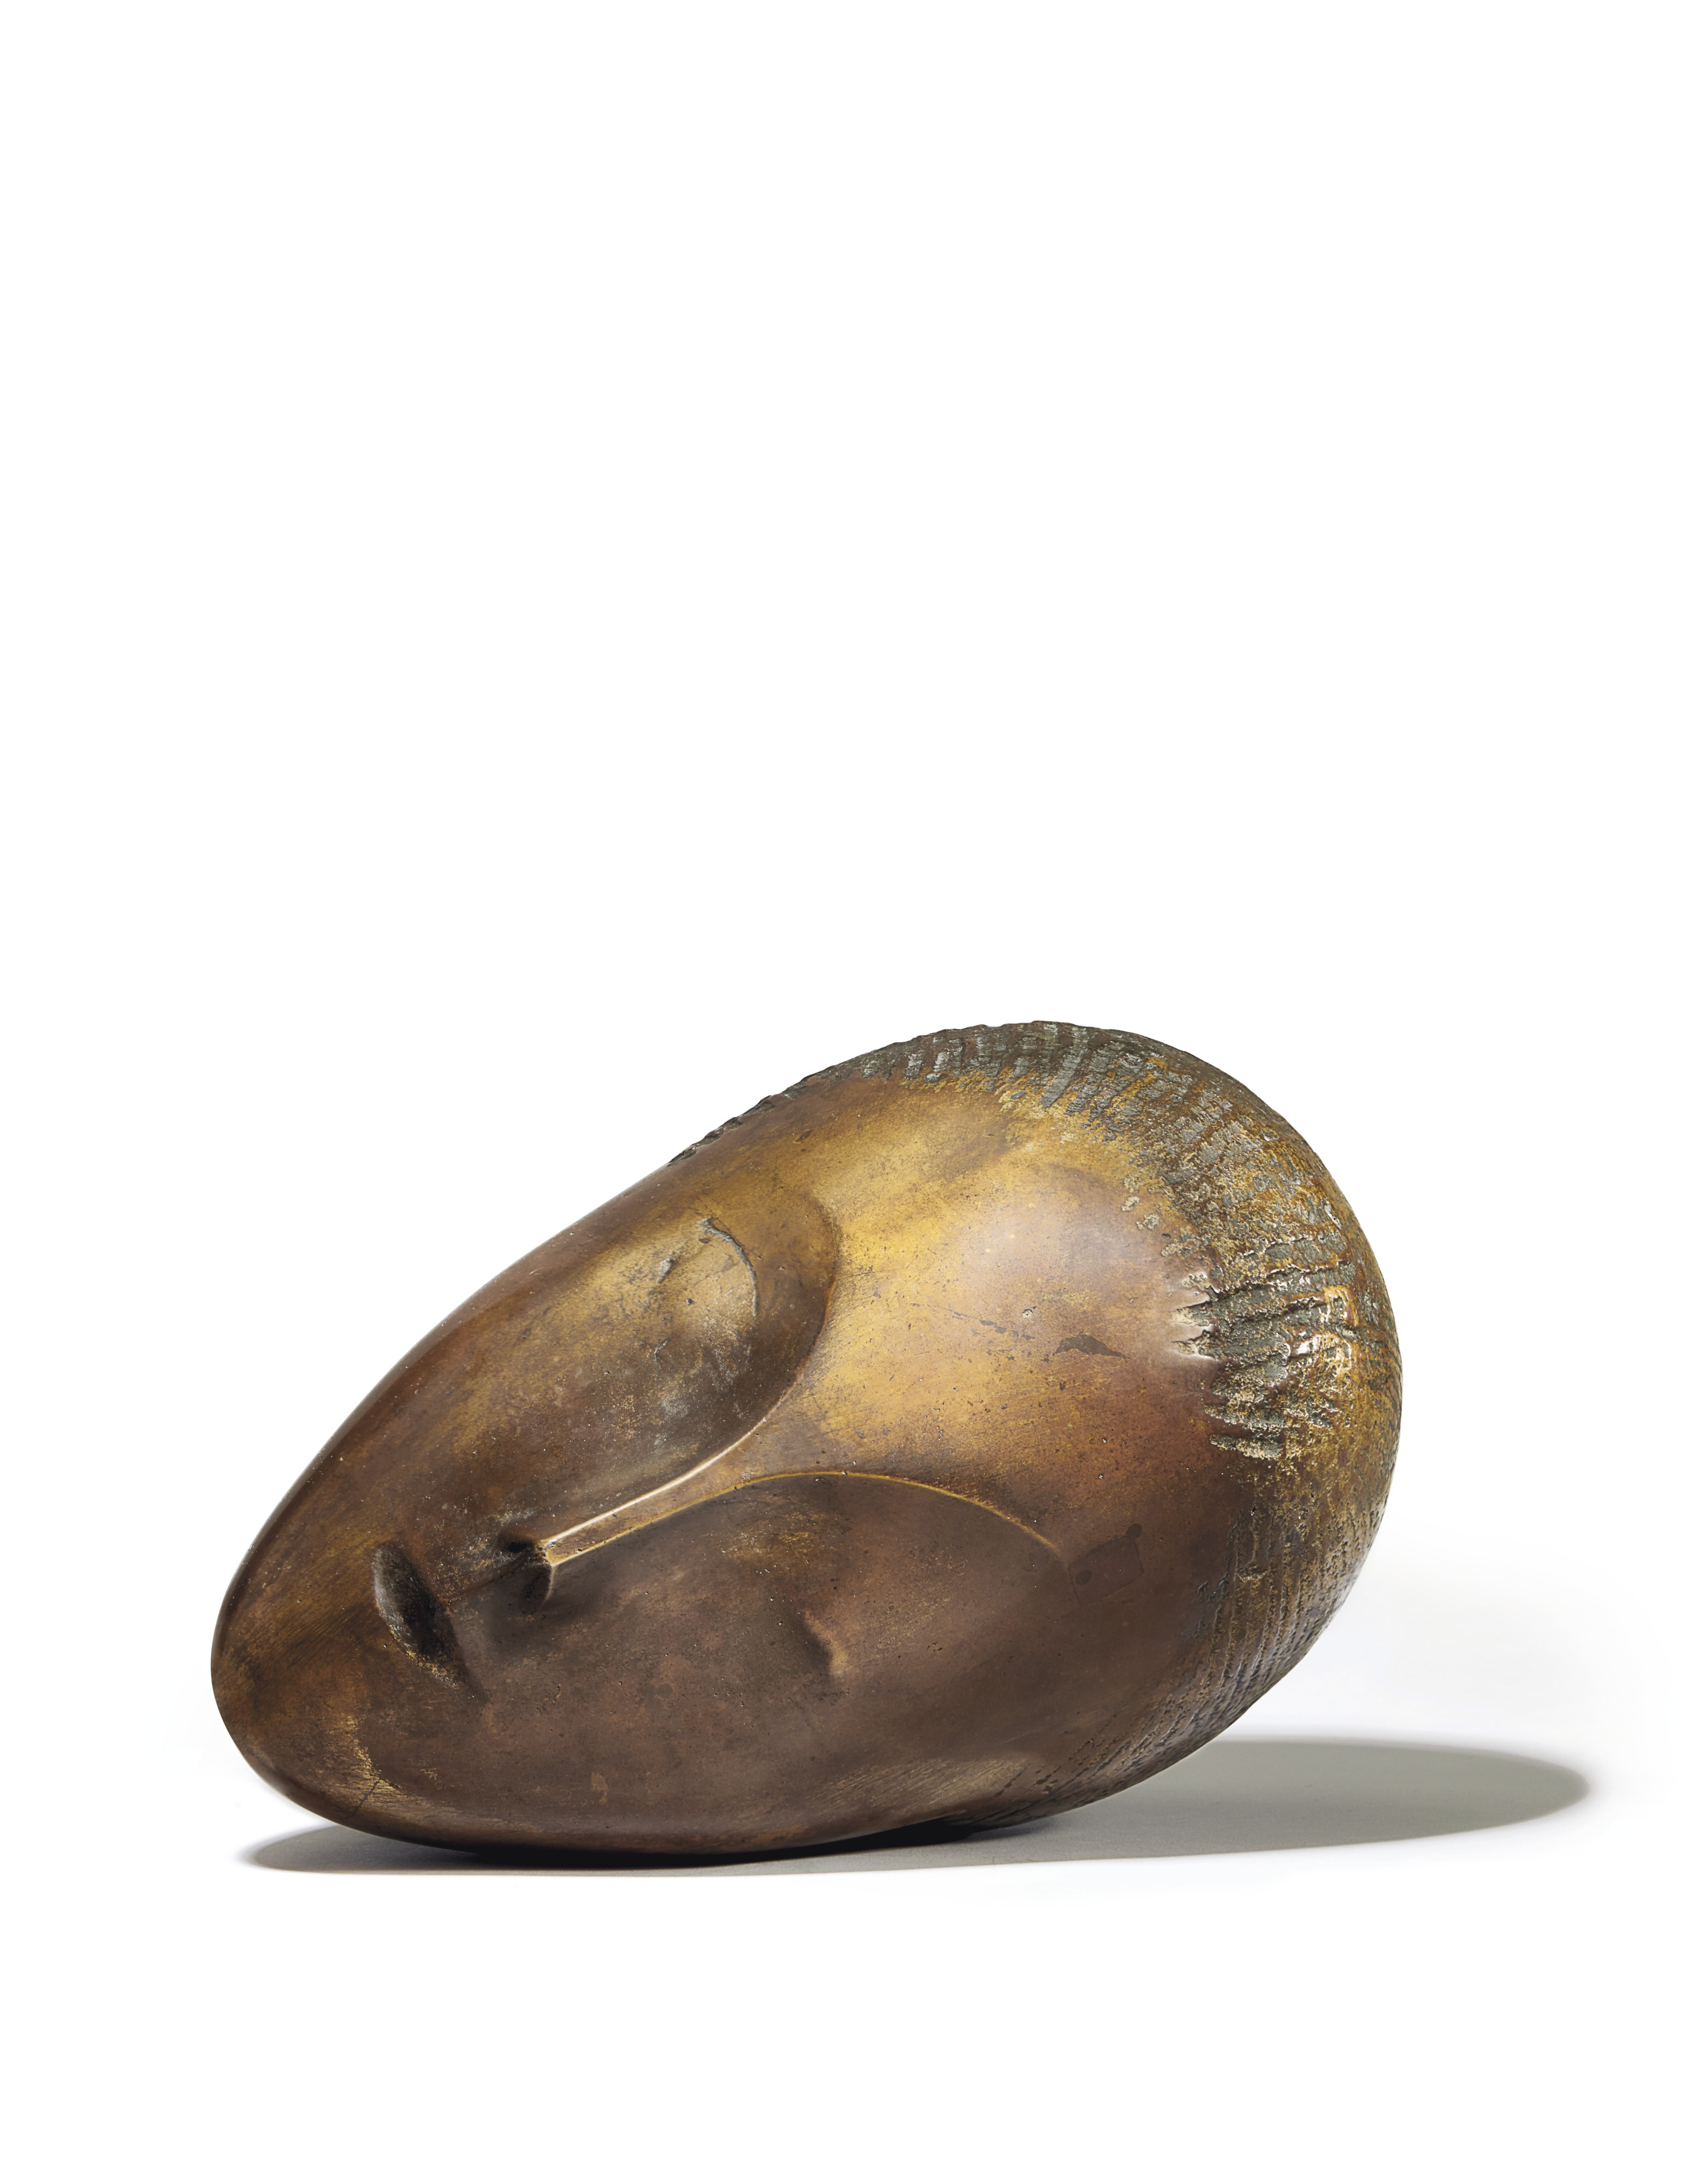 Constantin Brancusi, La muse endormie. Sold for $57,367,500. WORLD AUCTION RECORD FOR THE ARTIST